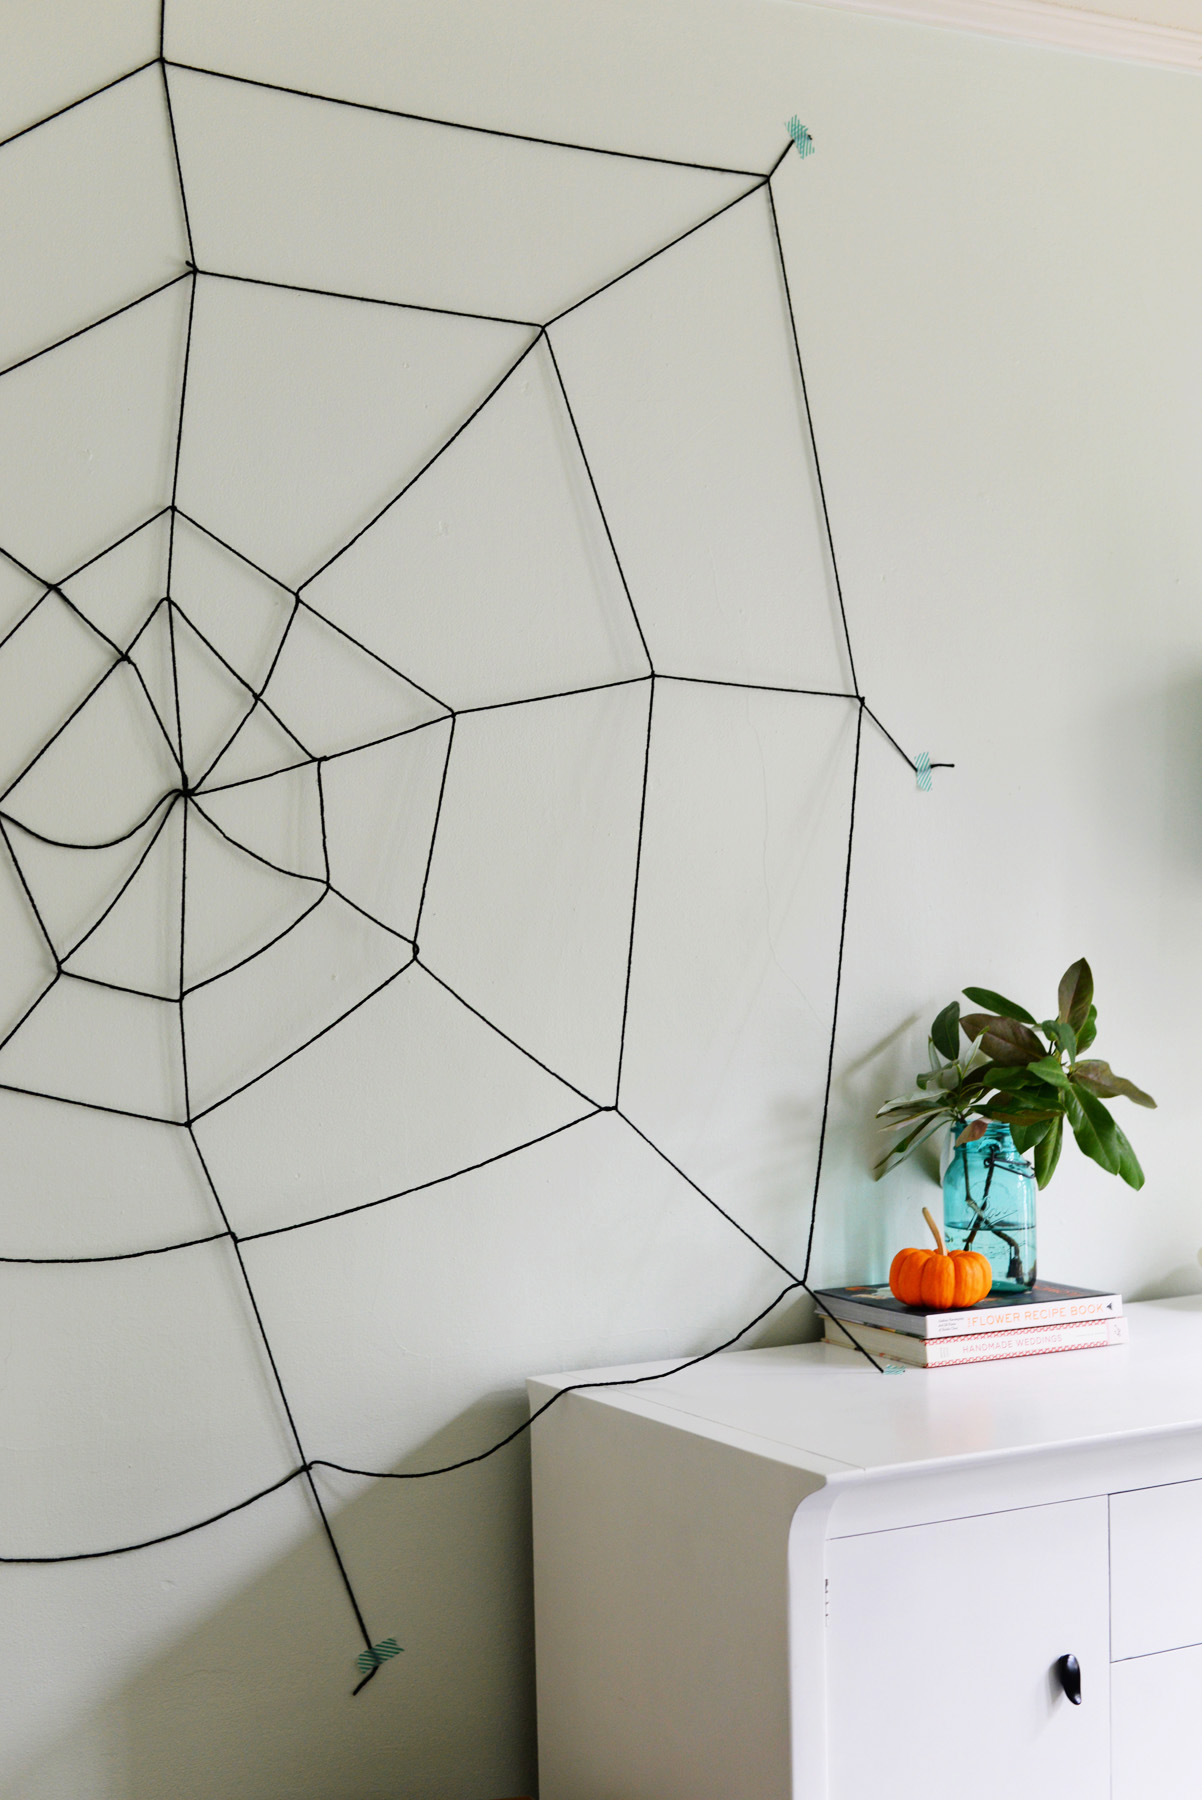 yarn spider web DIY